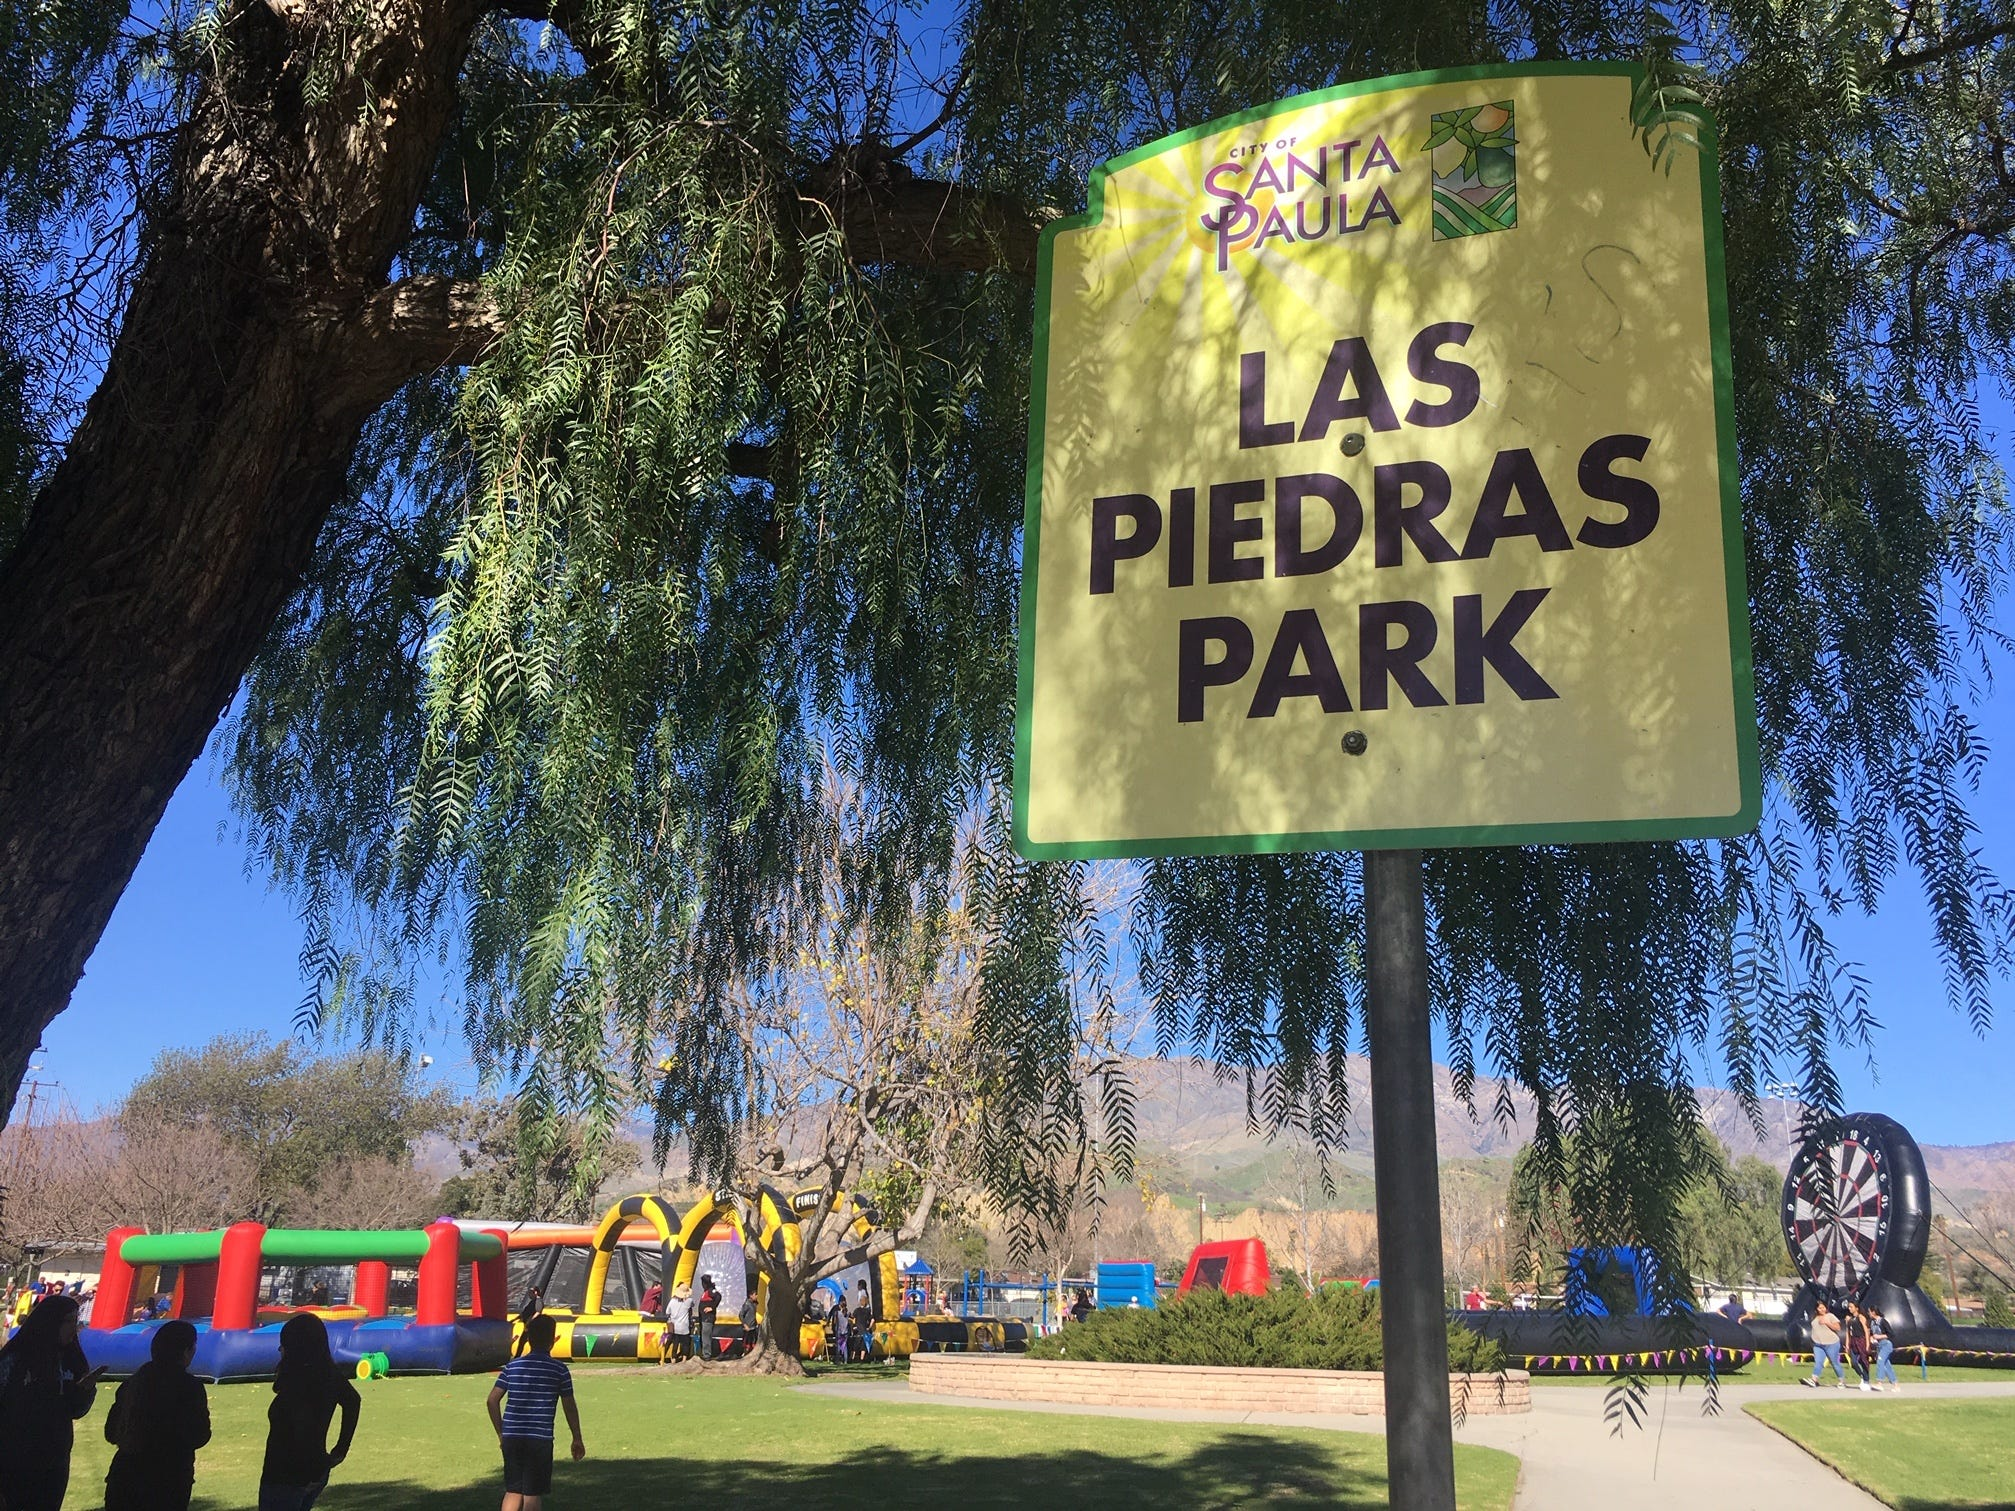 Santa Paula's new youth center is adjacent to Las Piedras Park on 13th Street.